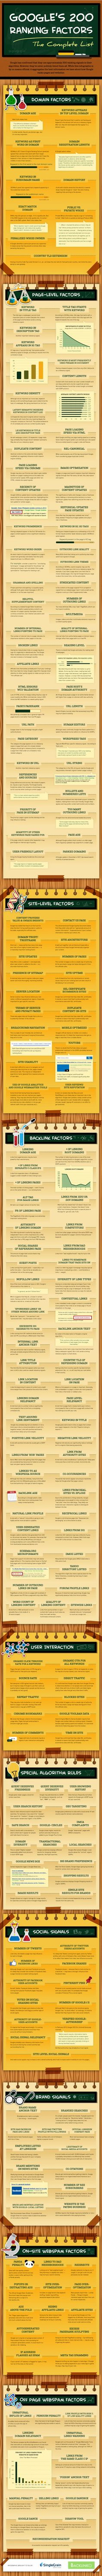 SEO Ranking Factors in 2014 Infographic